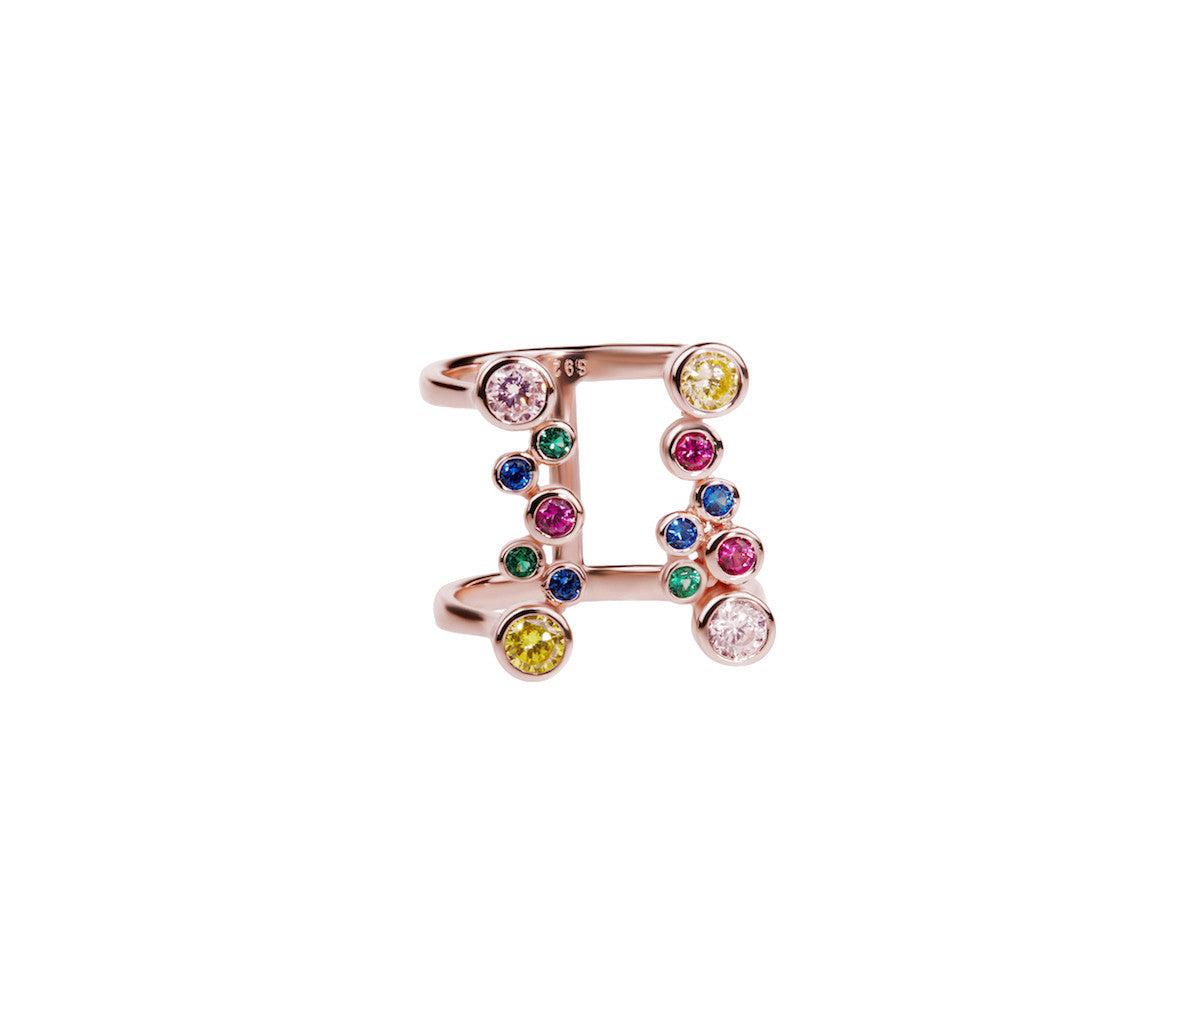 Pink Bubble Dazzling Ring with Multicolor Stones